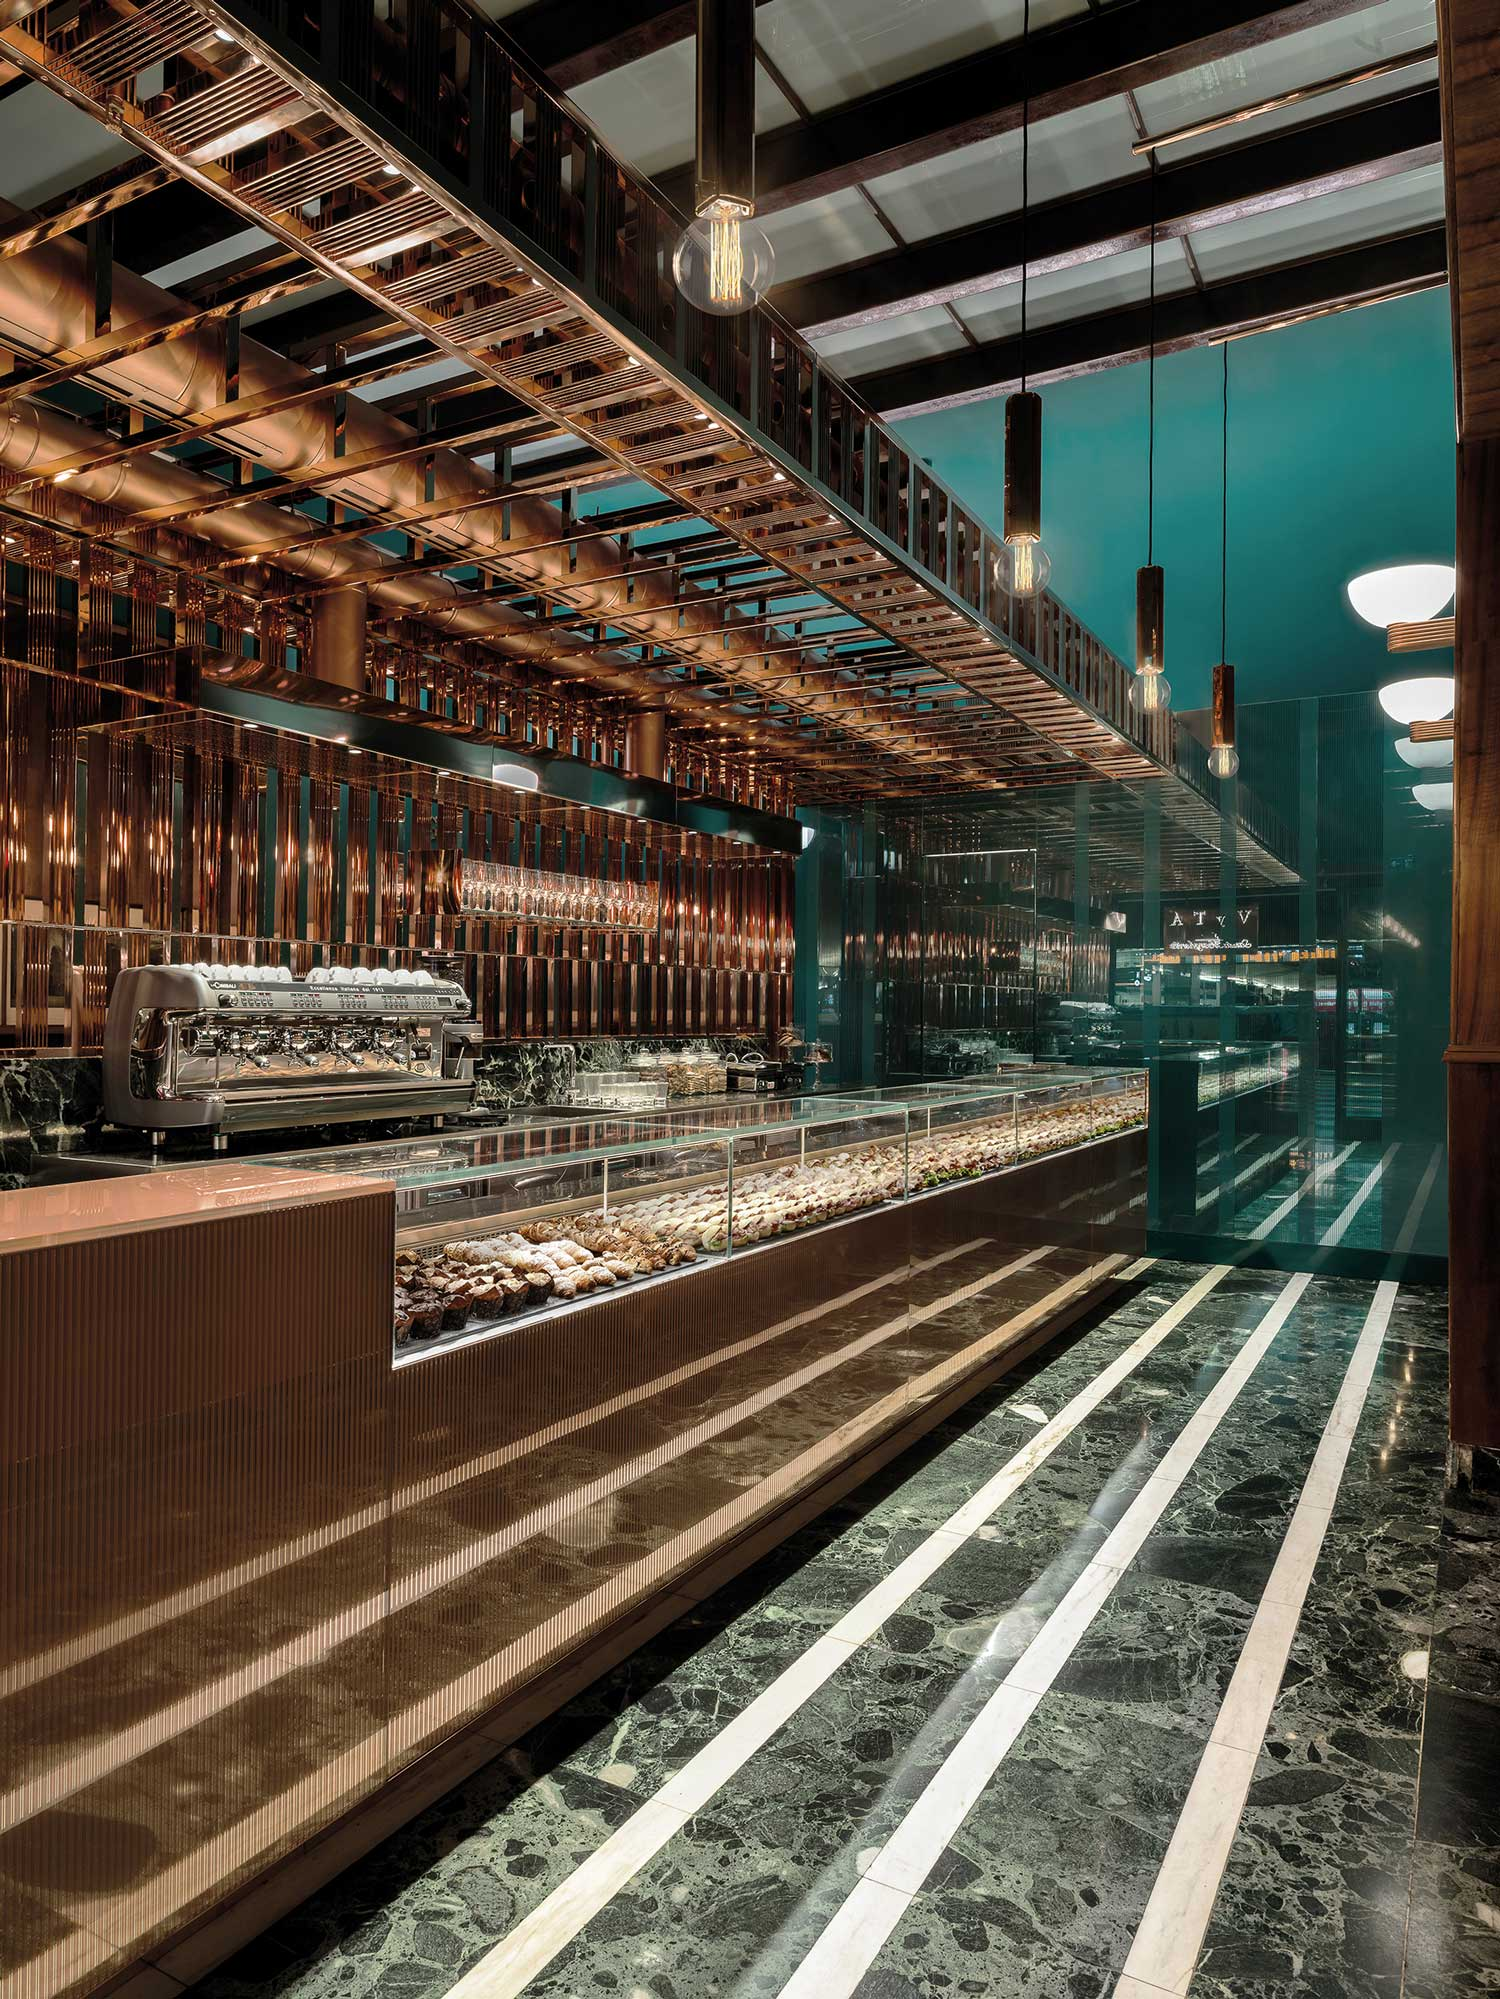 Vyta Espresso Bar at Florence Santa Maria Novella by Daniela Colli | Yellowtrace